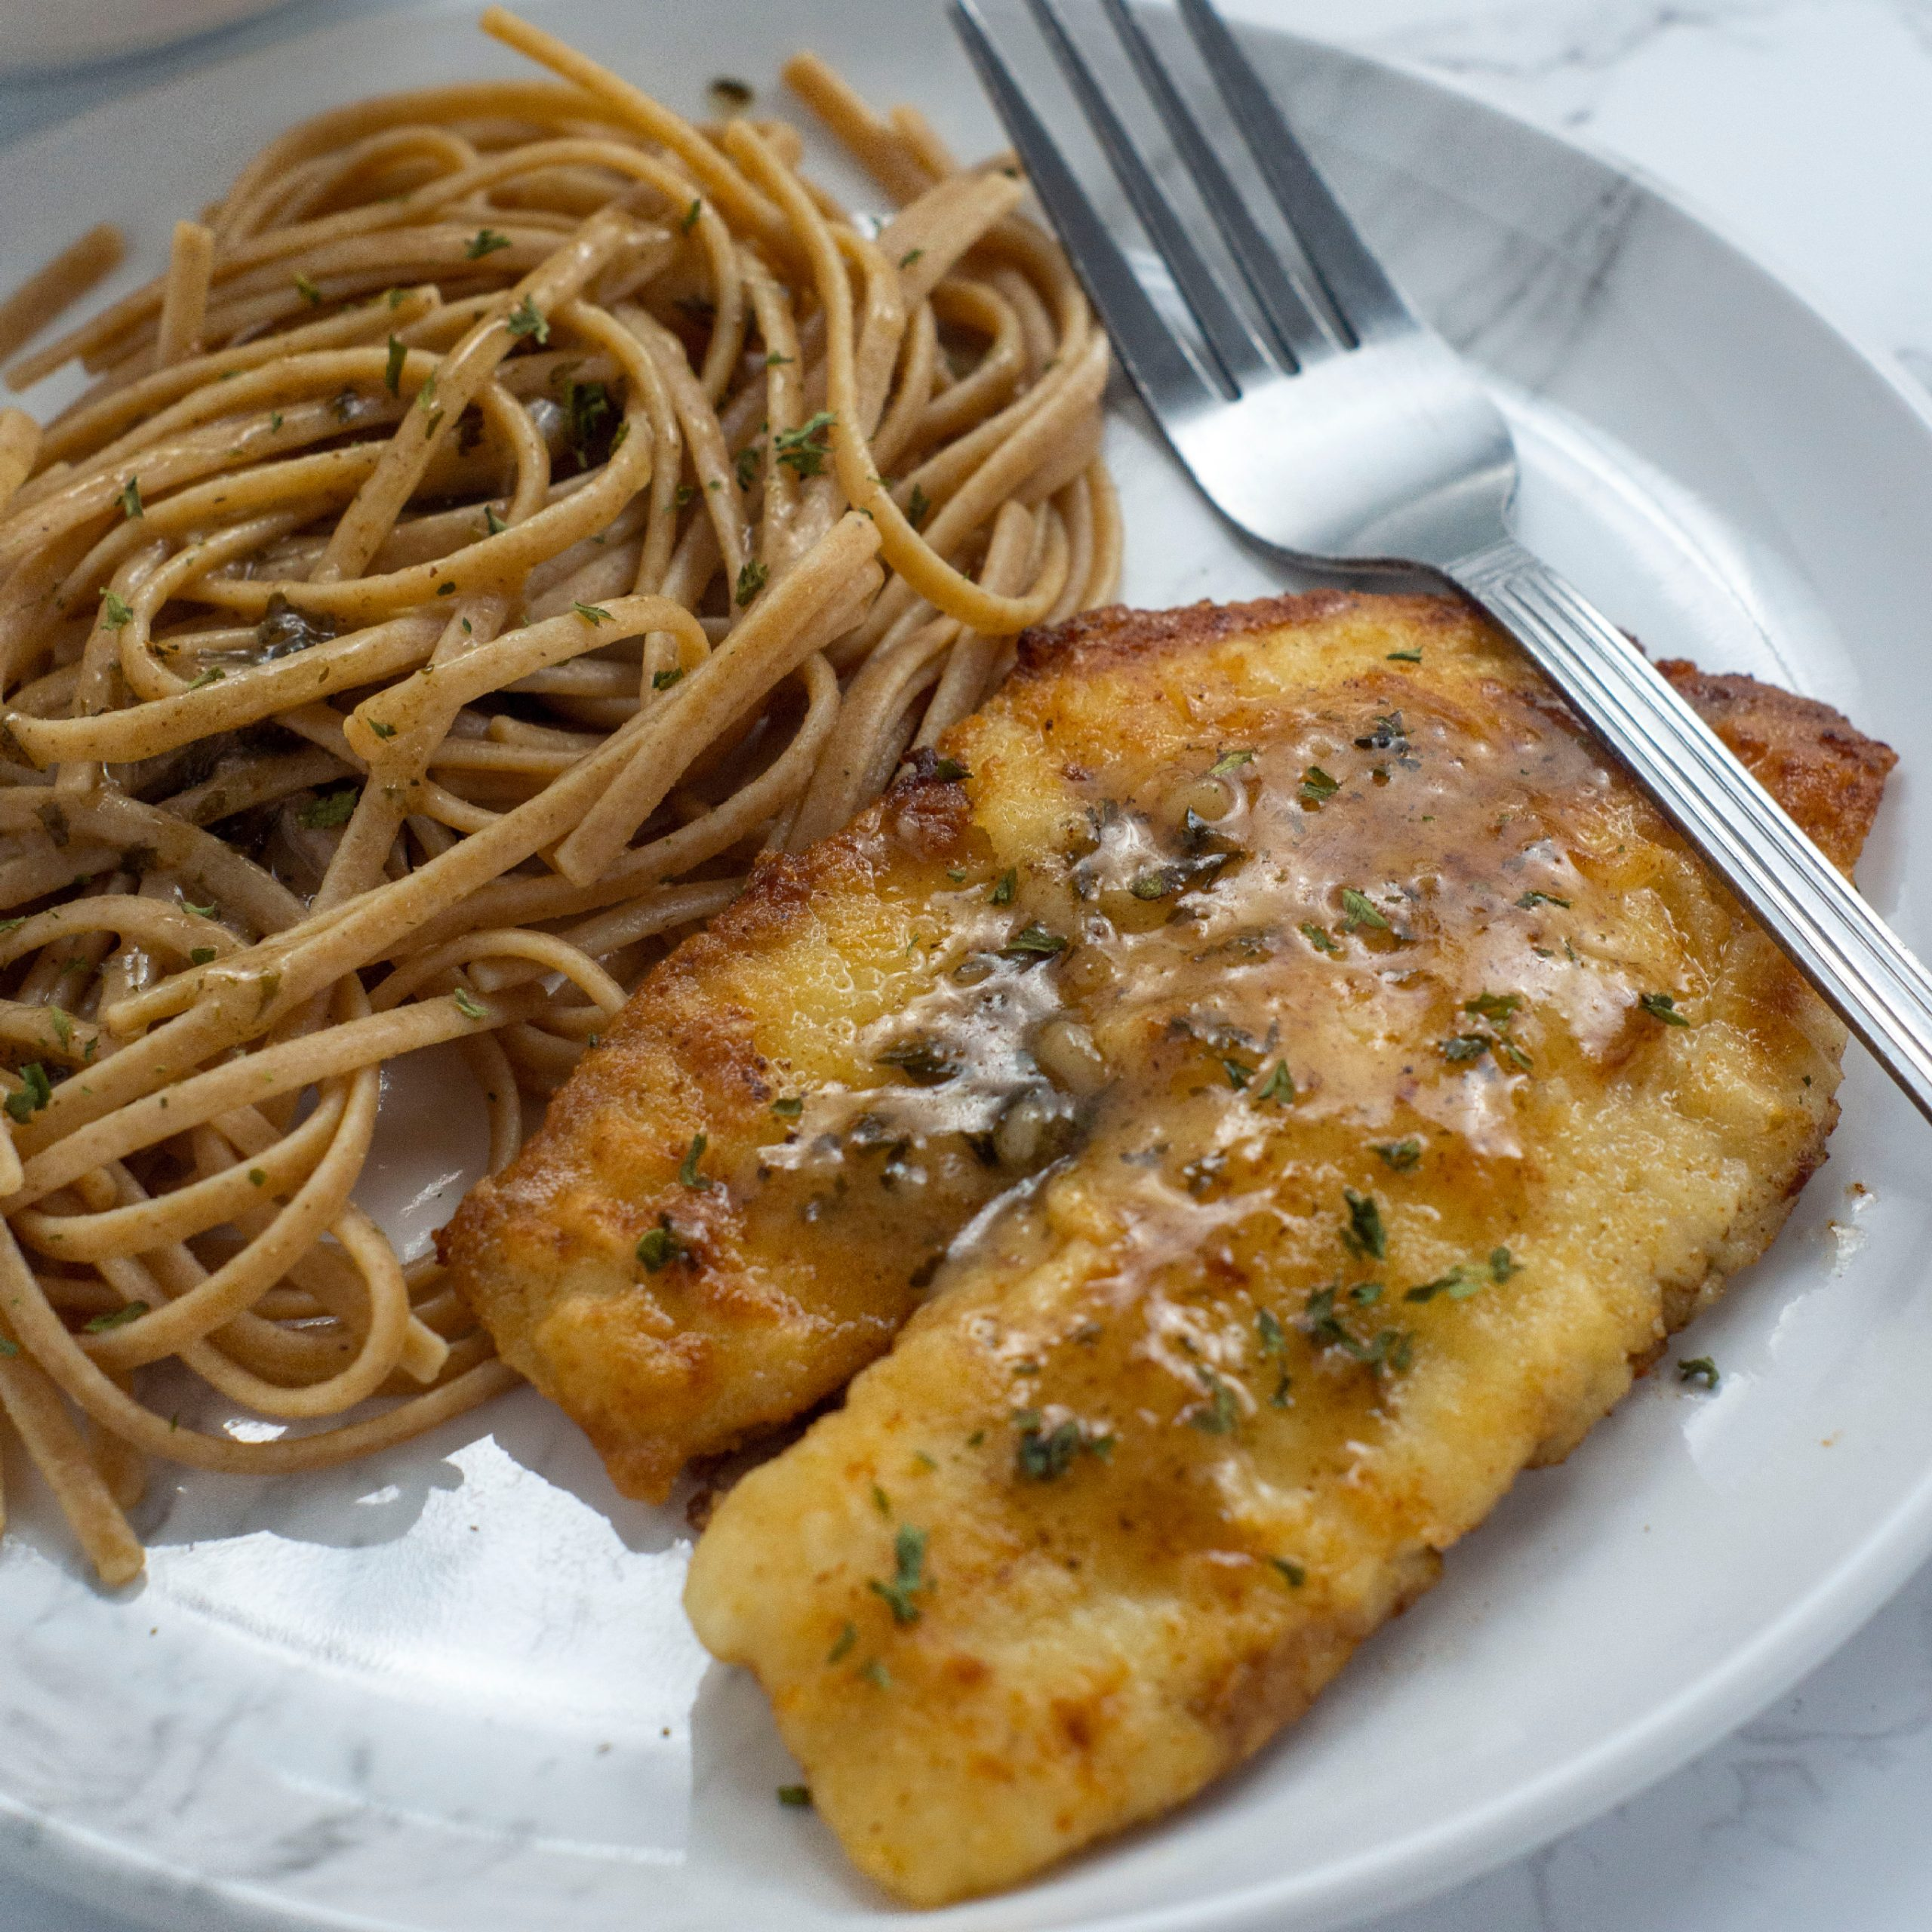 Lemon butter tilapia filet and noodles on white plate